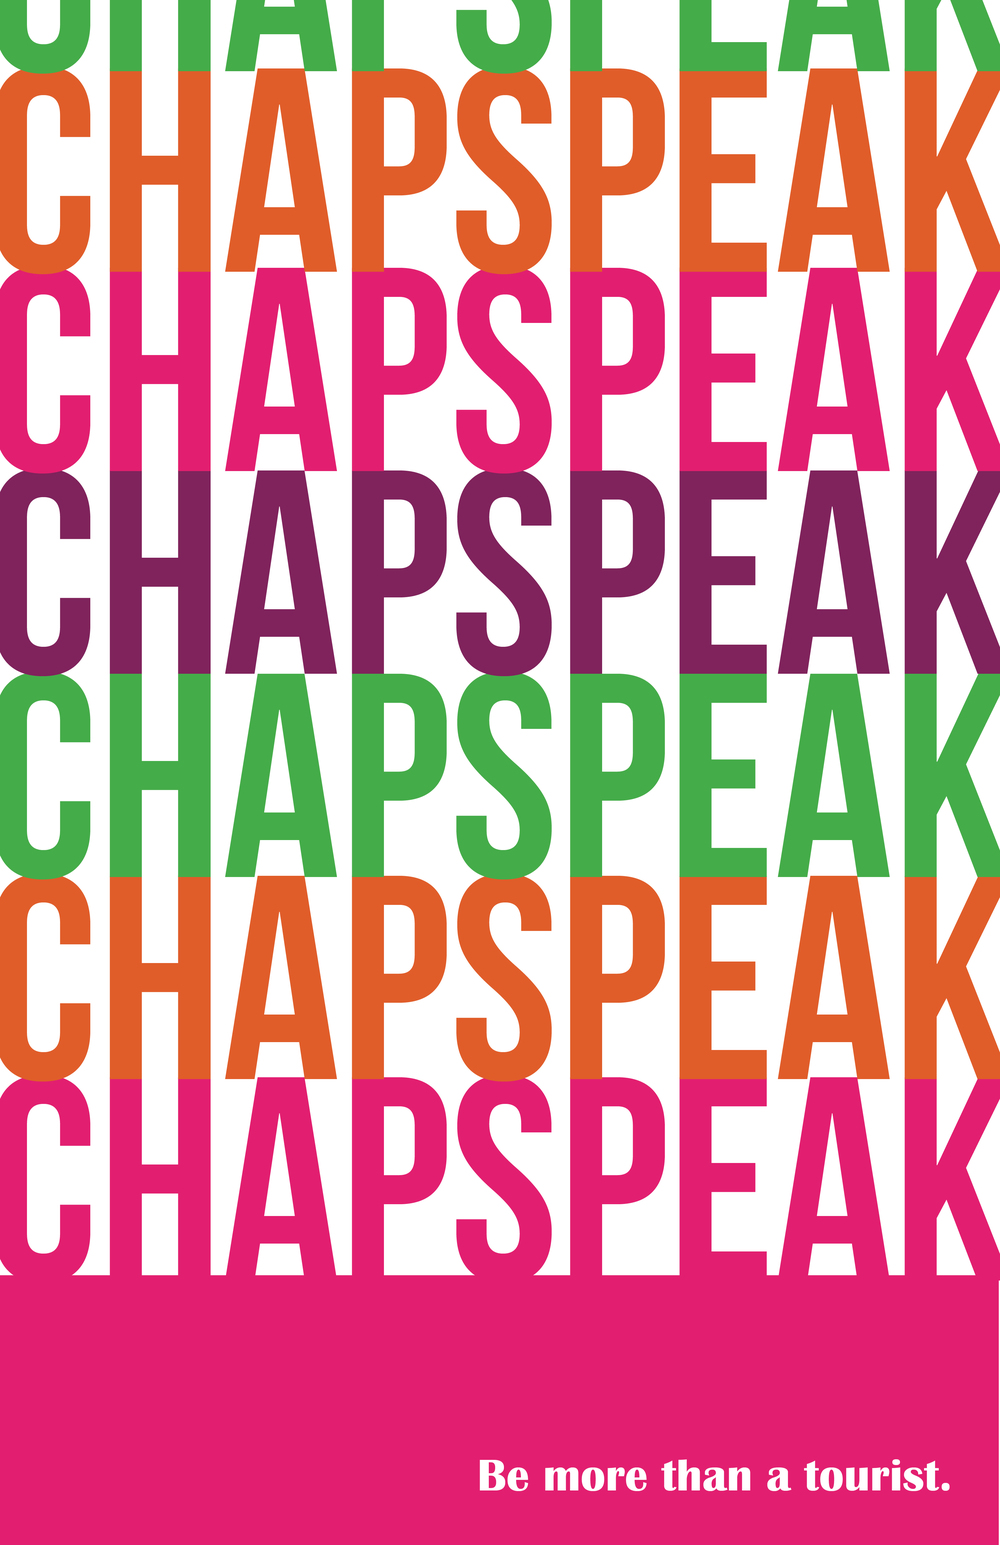 ChapSpeak_packaging-07.jpg